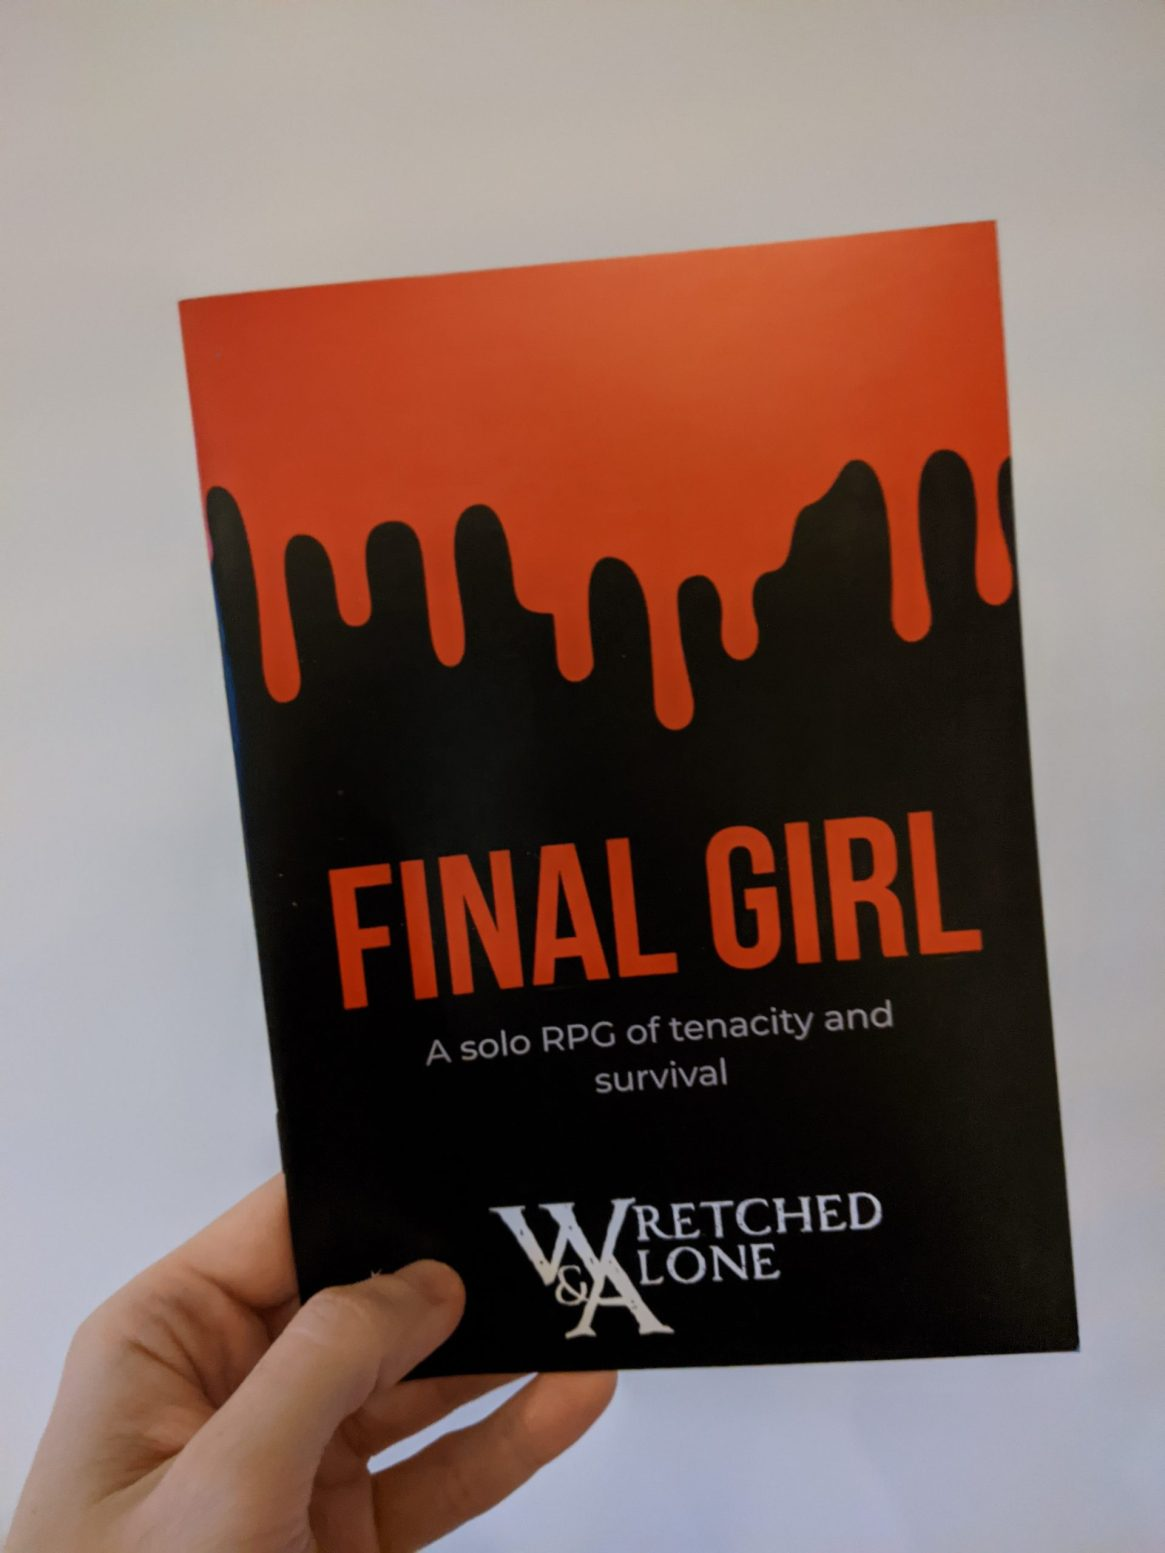 A hand holding an A5 print zine. Blood drips down the black cover towards the words FINAL GIRL in bold all-caps. The Wretched & Alone logo is visible at the bottom of the page.